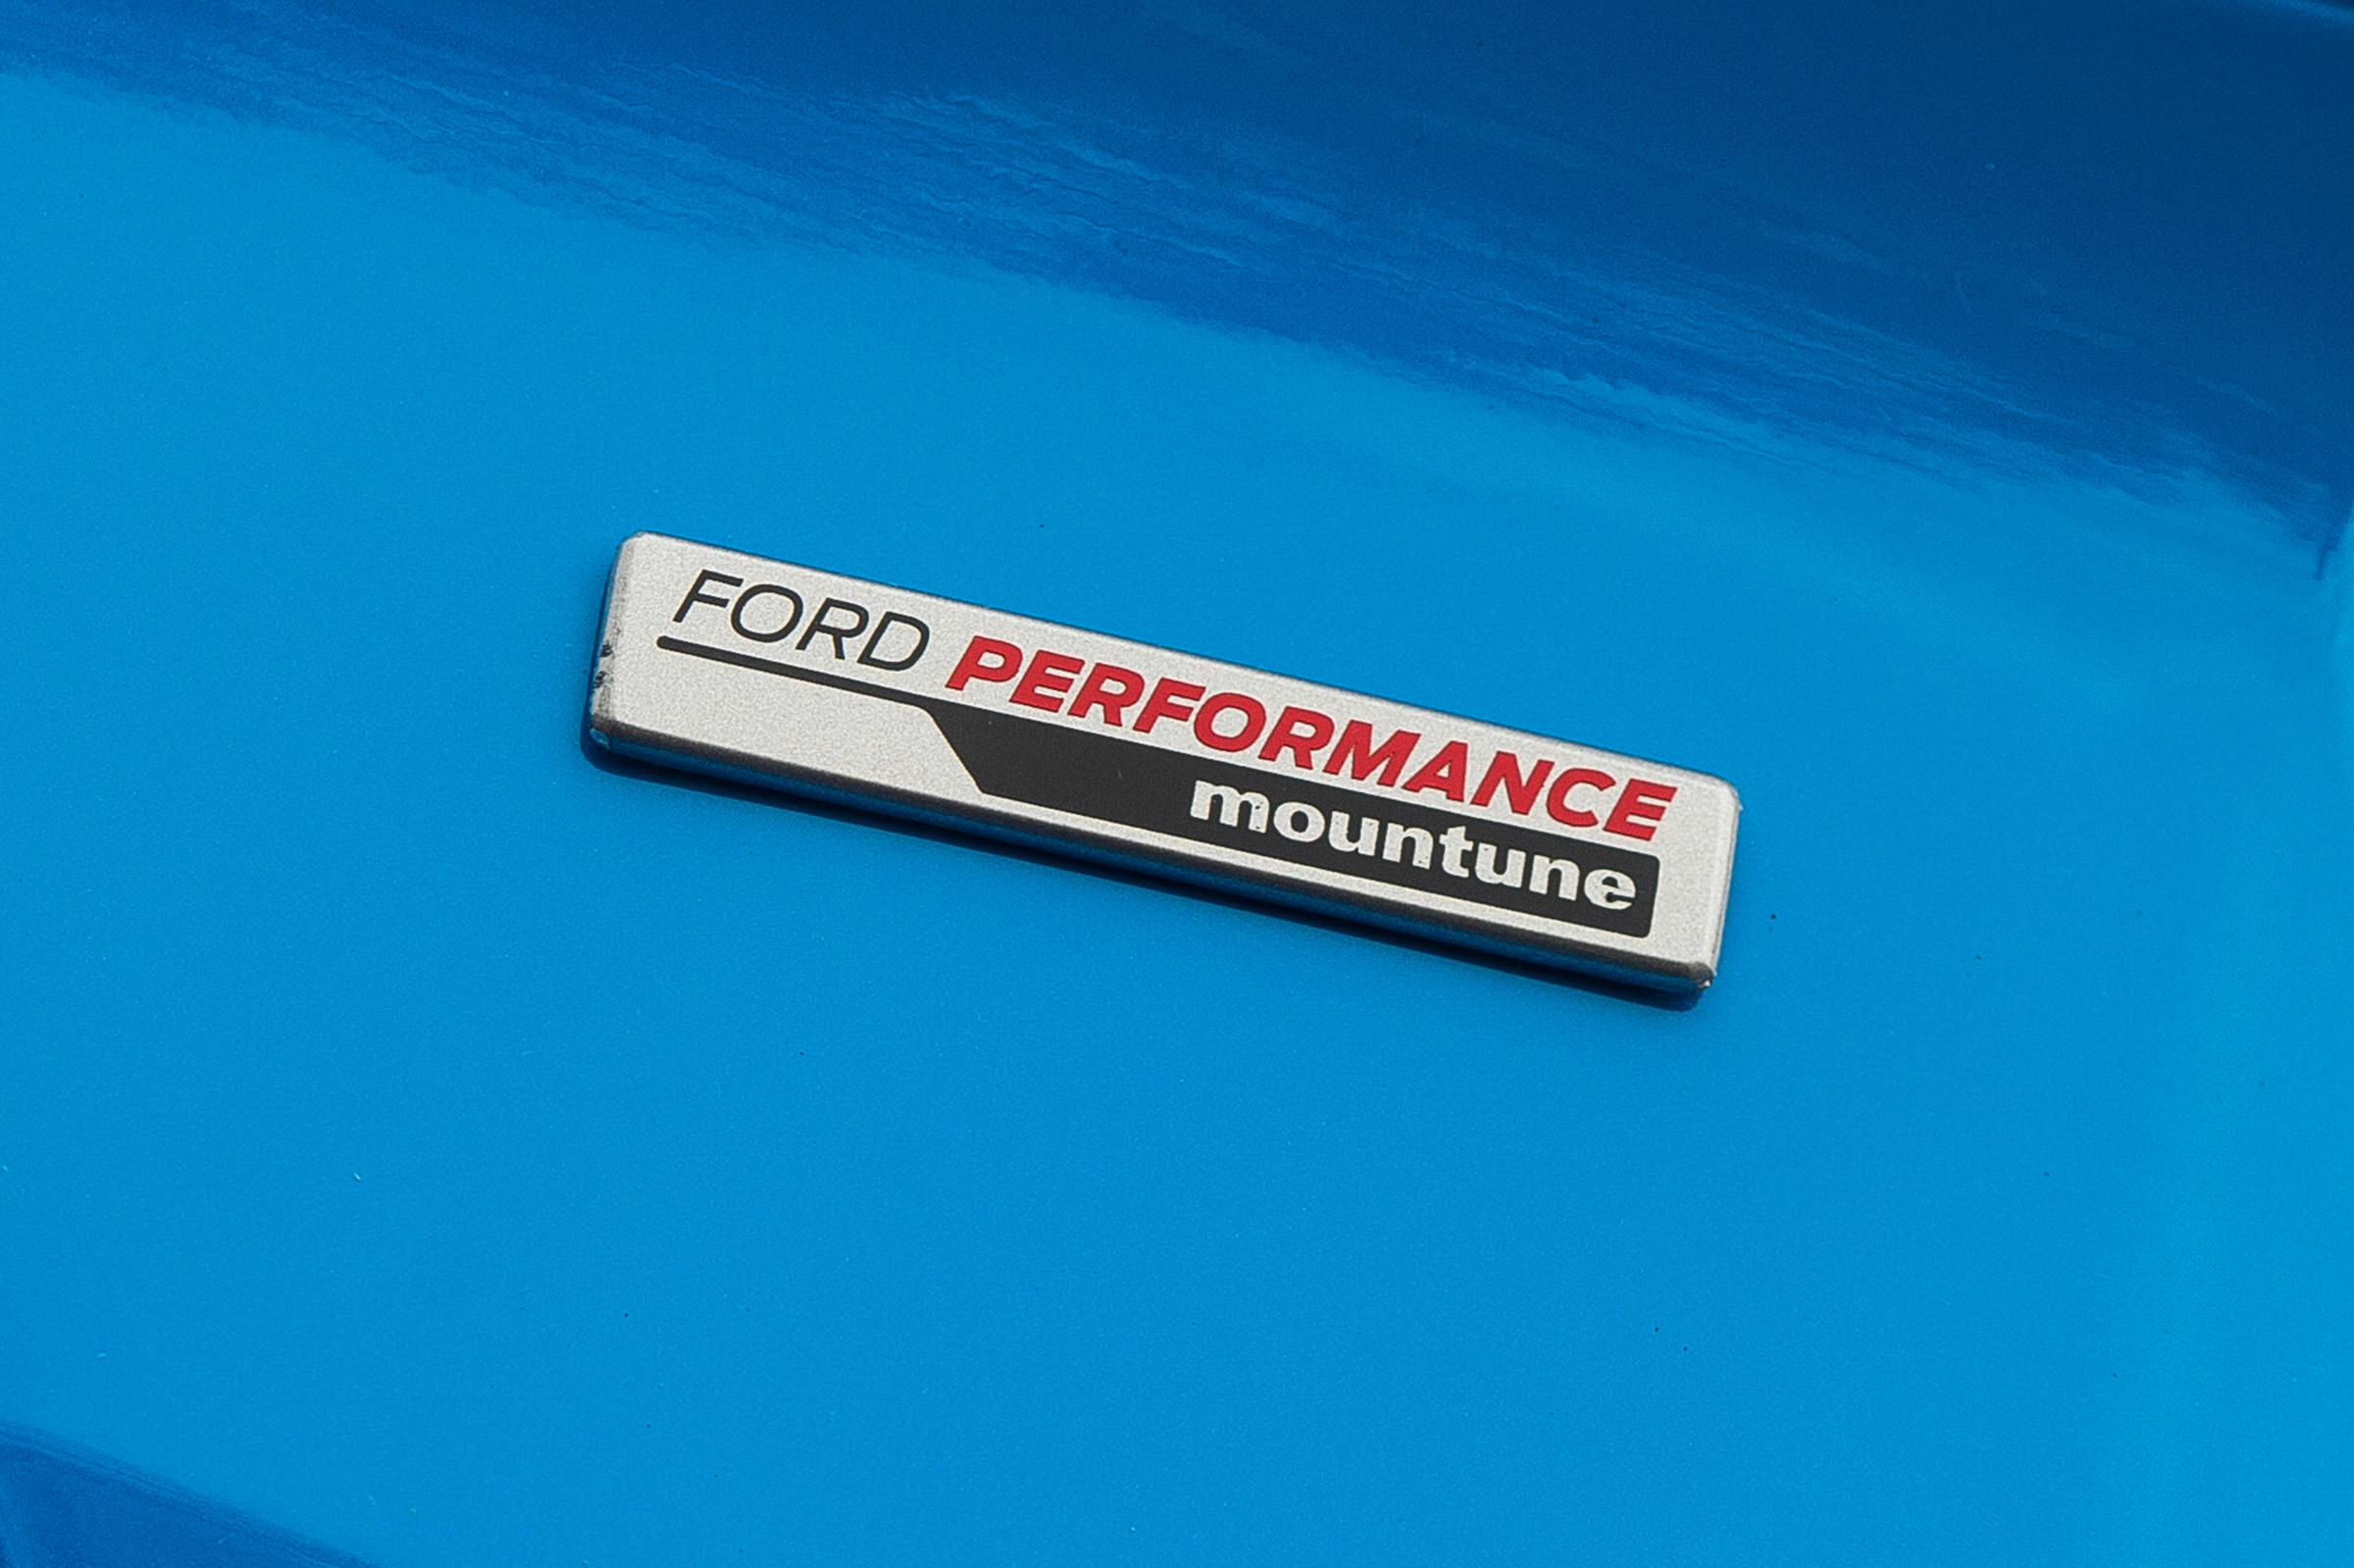 2017 Ford Focus RS Exterior View Emblem (Photo 4 of 23)